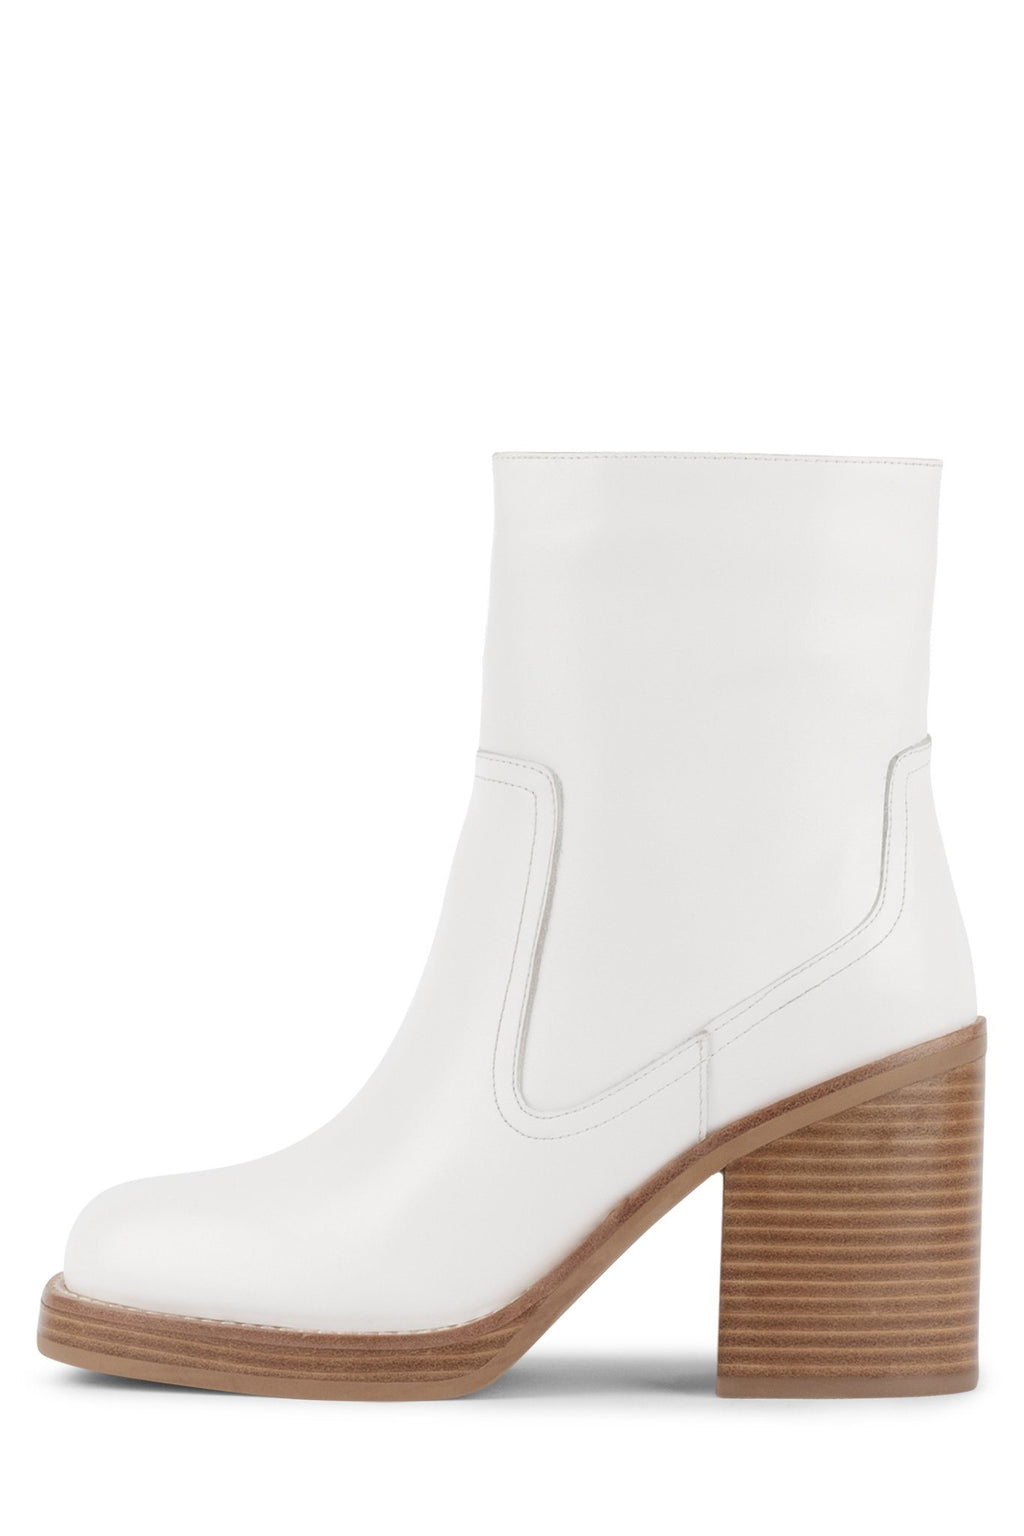 MAXEN Heeled Boot YYH White 6